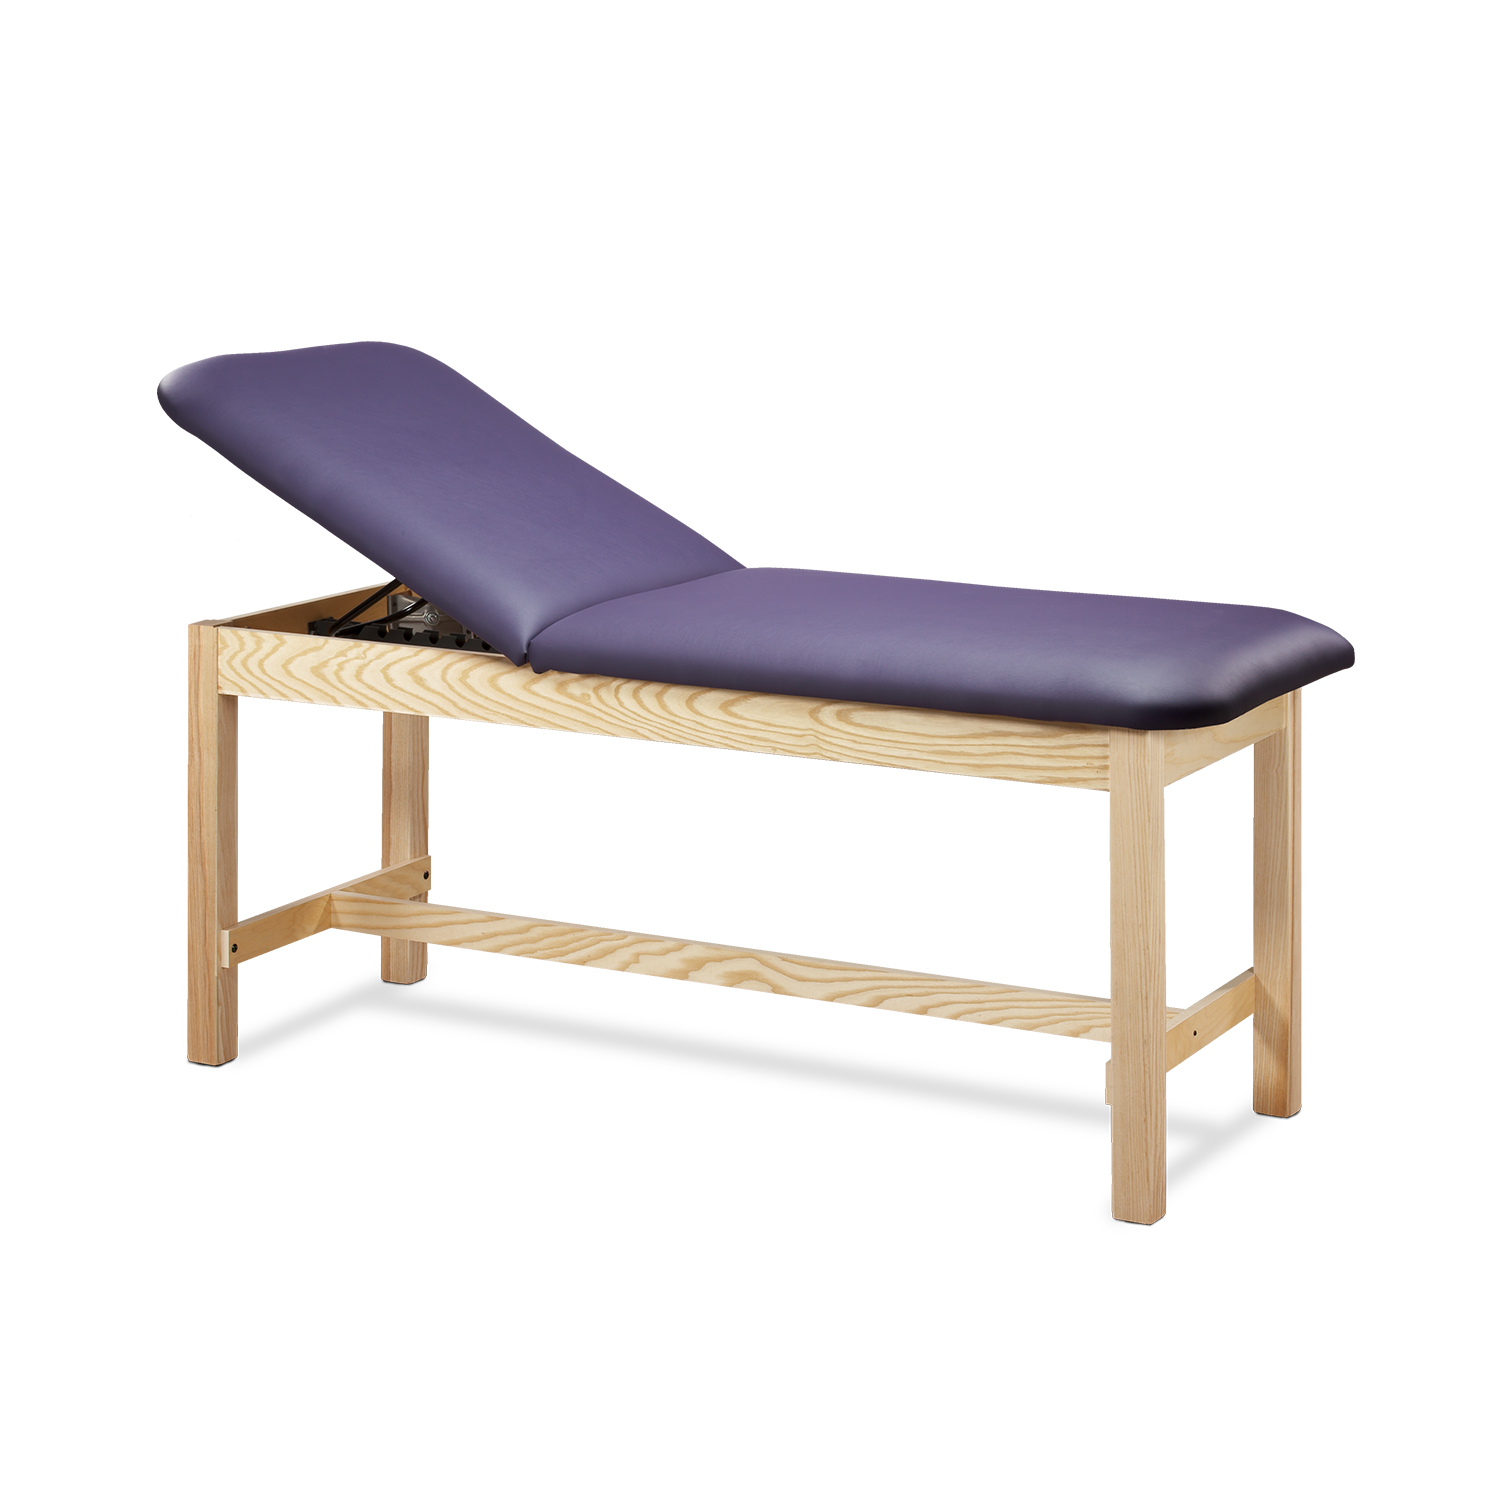 Clinton Eco-Friendly Wood Treatment Table - 81010